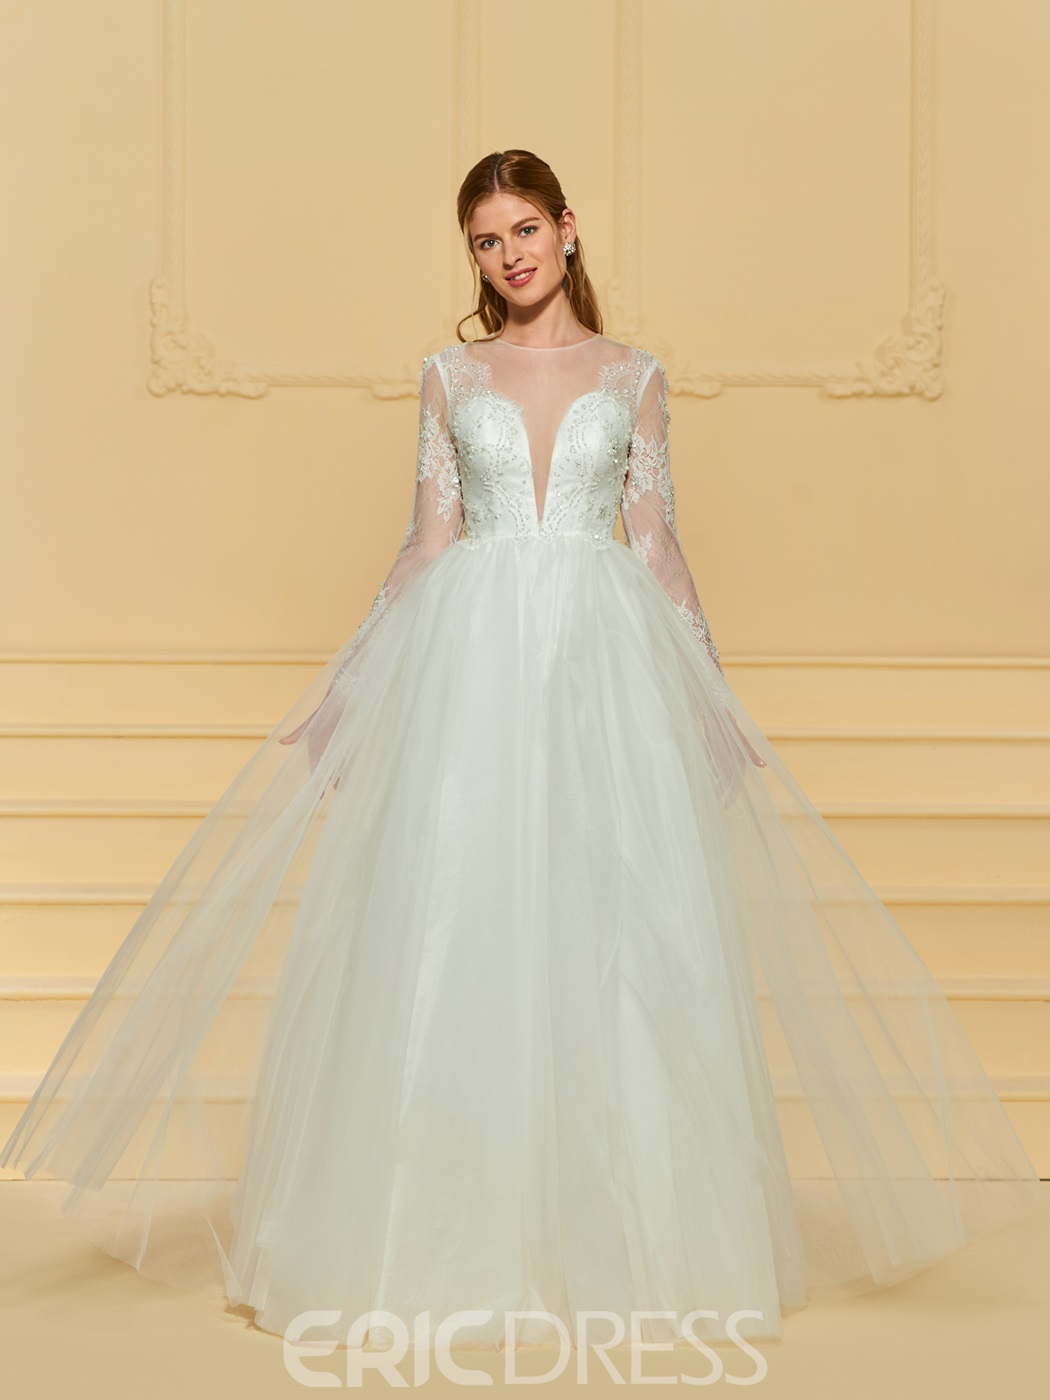 Ericdress Long Sleeves A Line Tulle Wedding Dress 13172384 ...